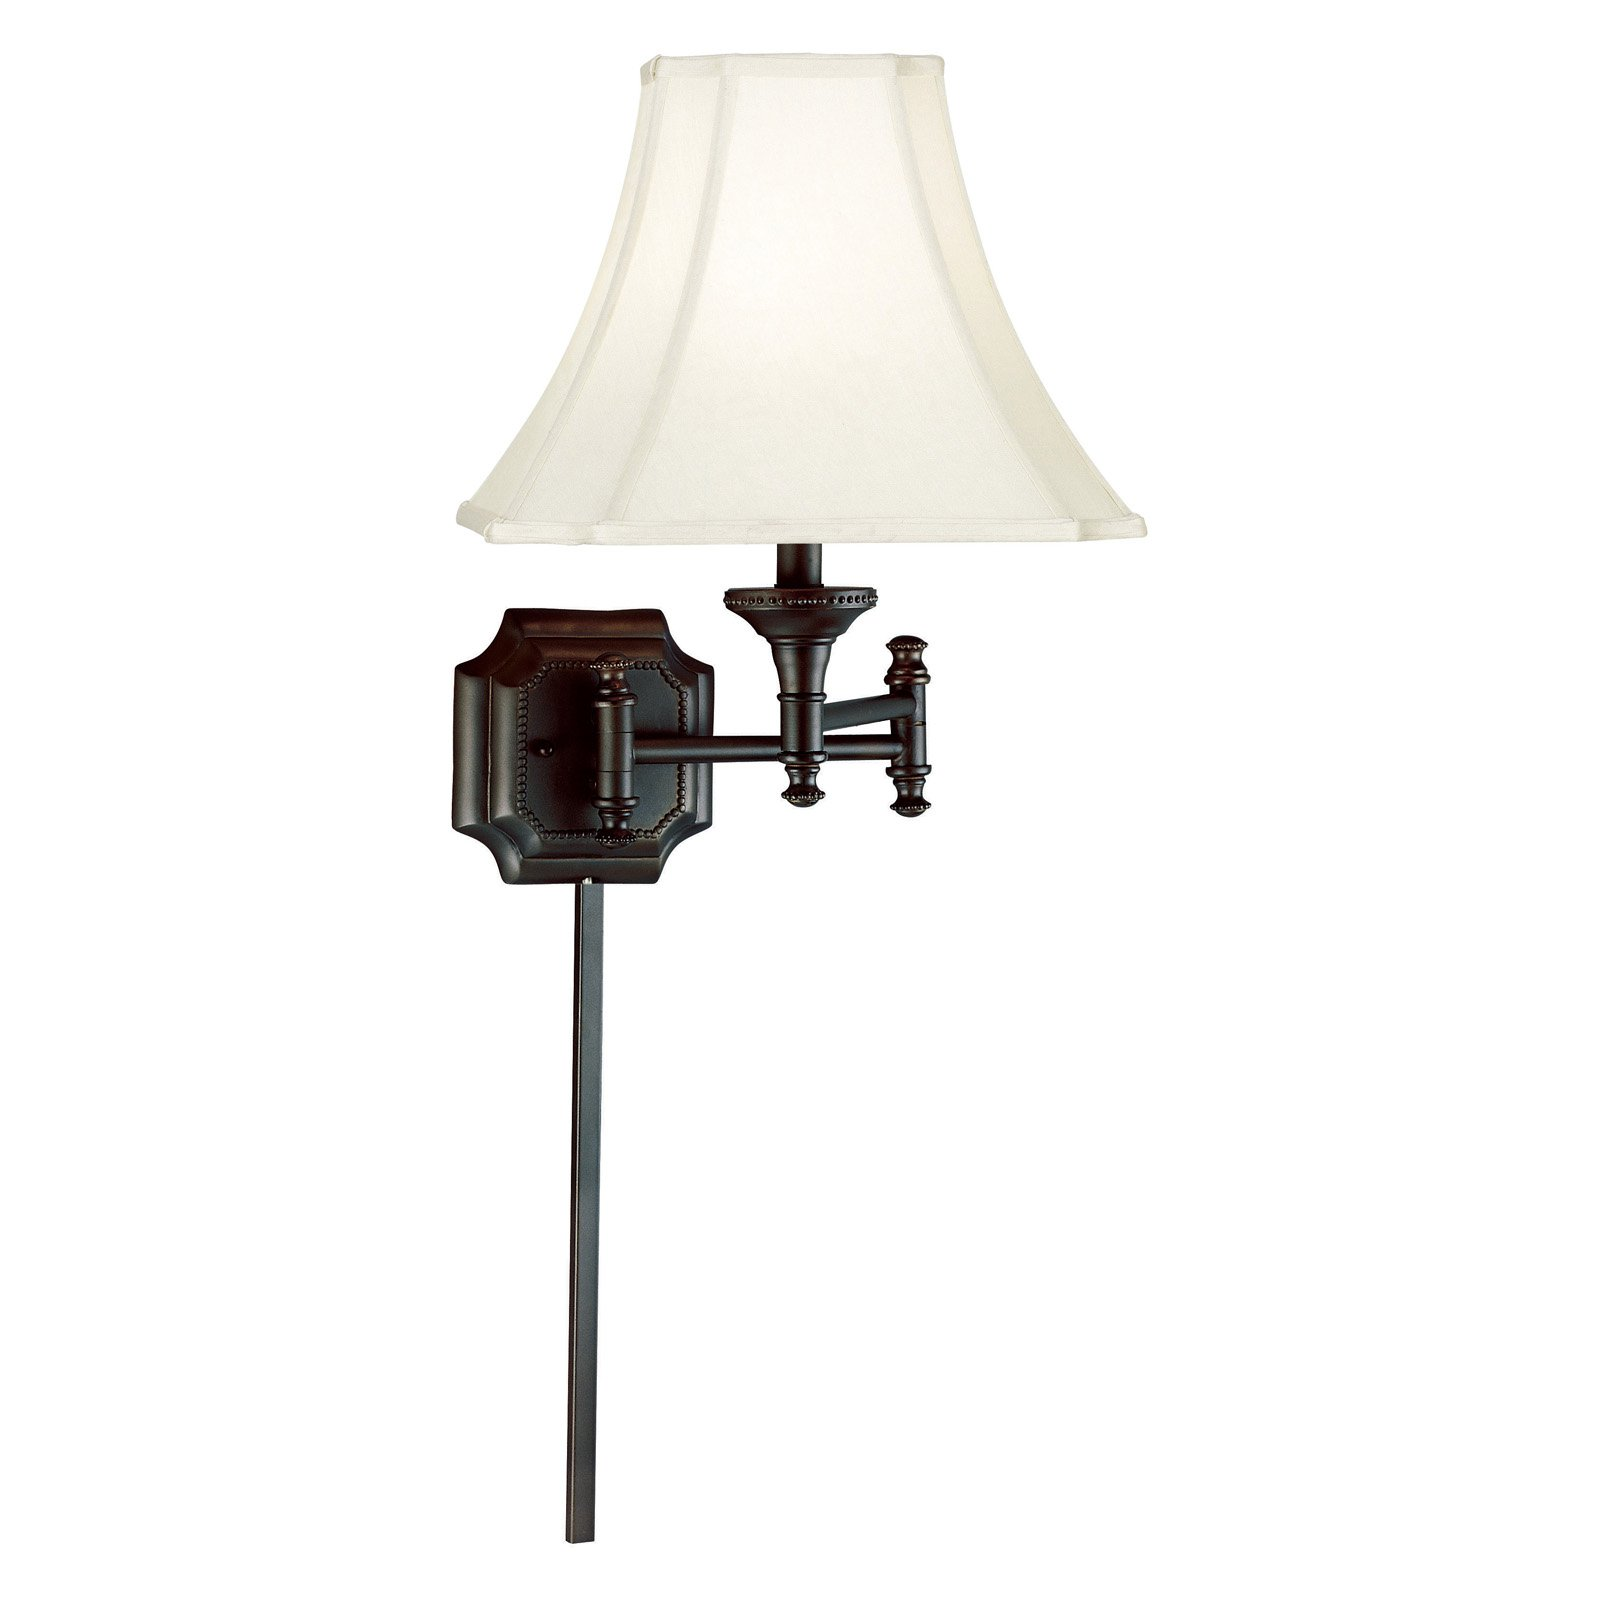 Kenroy Home Wentworth Wall Swing Arm Lamp 33054BBZ by Kenroy Home